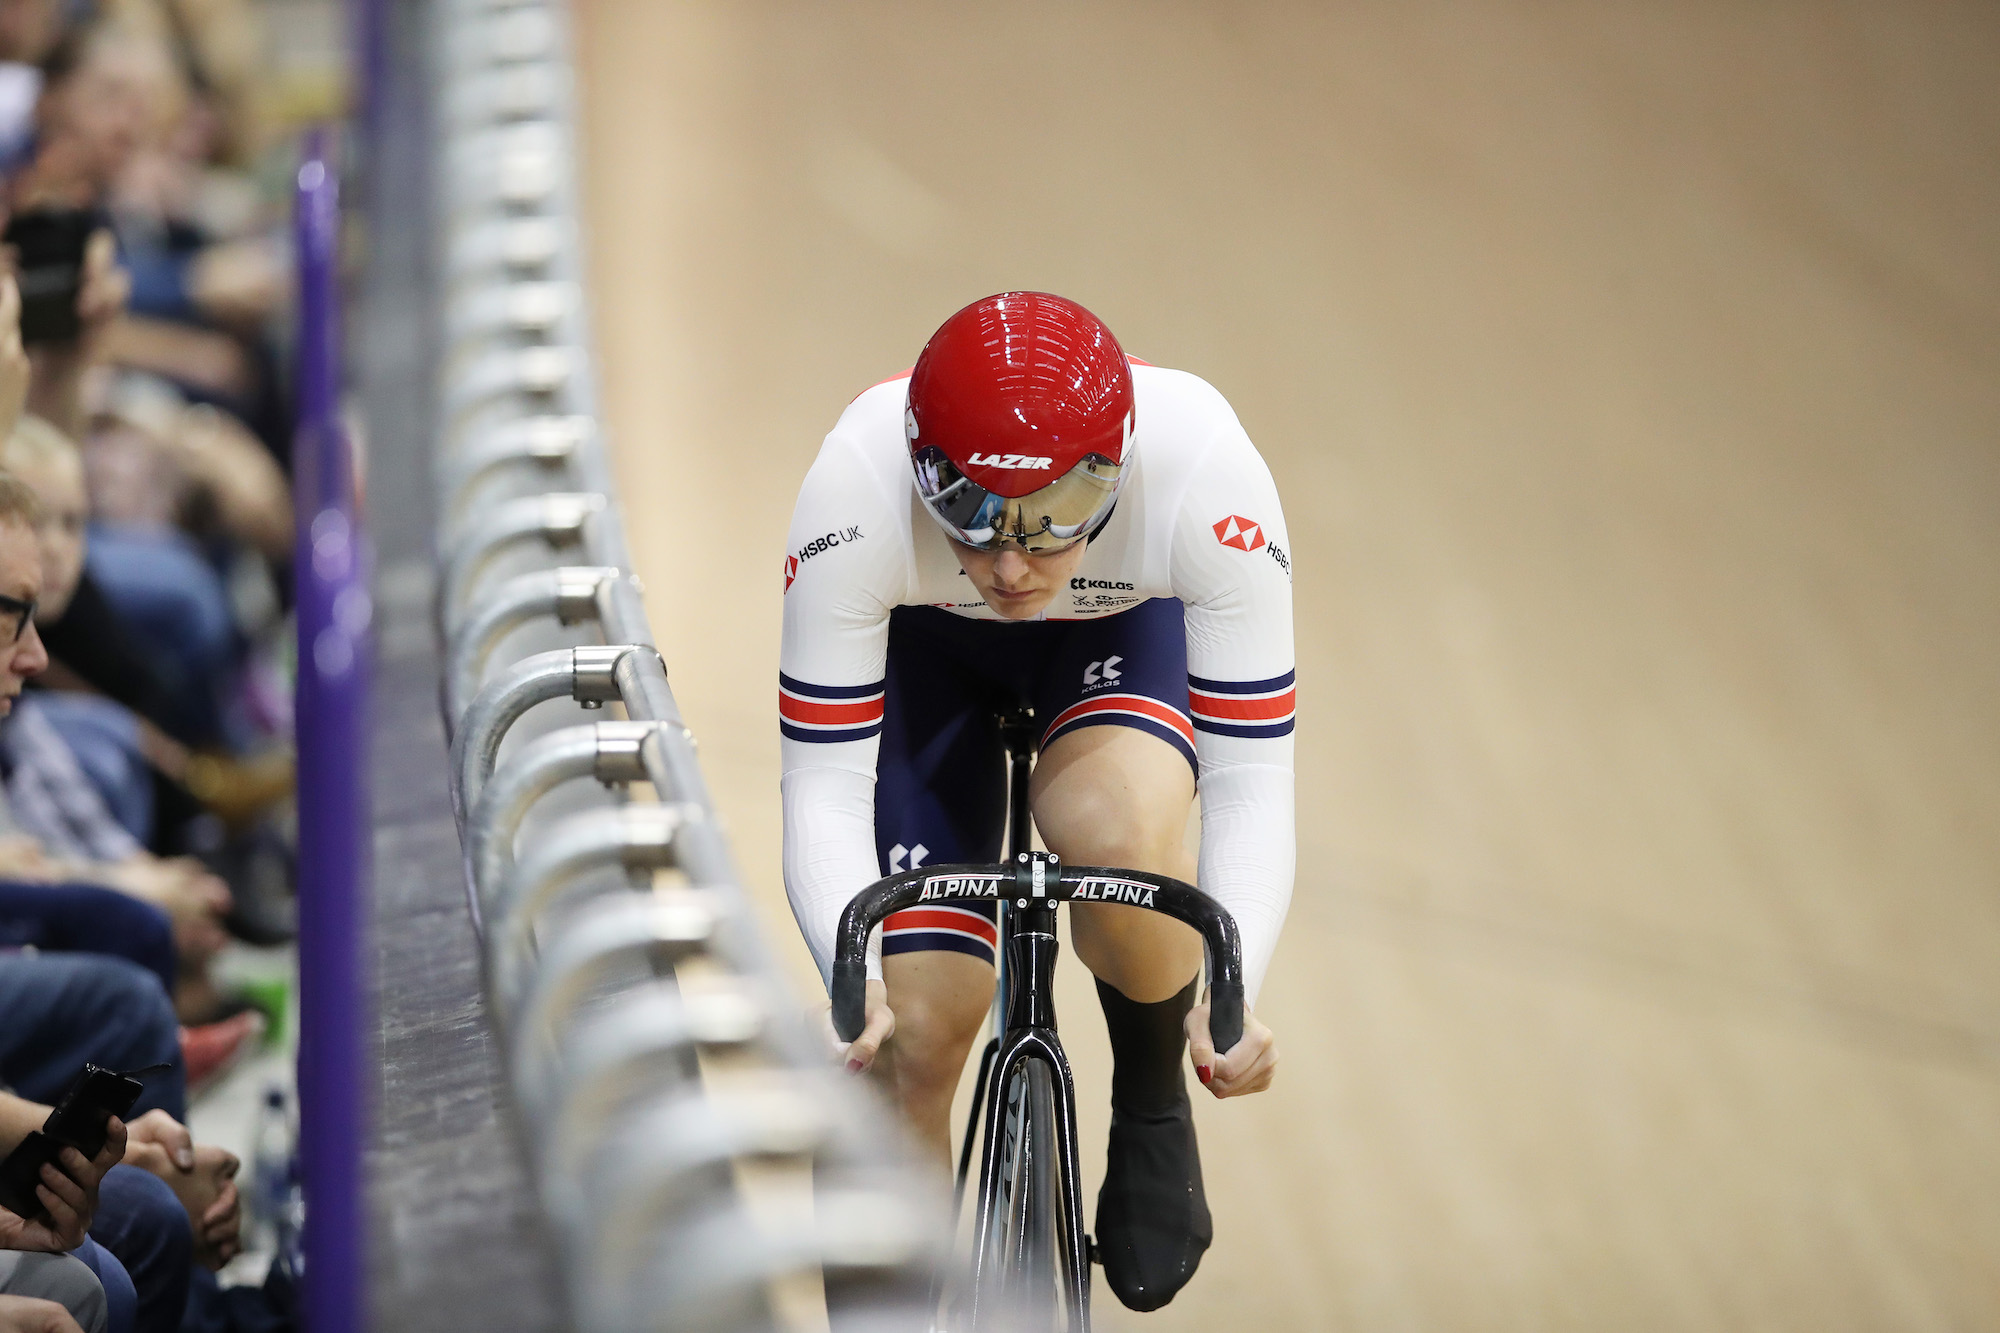 Katy Marchant snatches gold in Women's Keirin at Glasgow Track World Cup